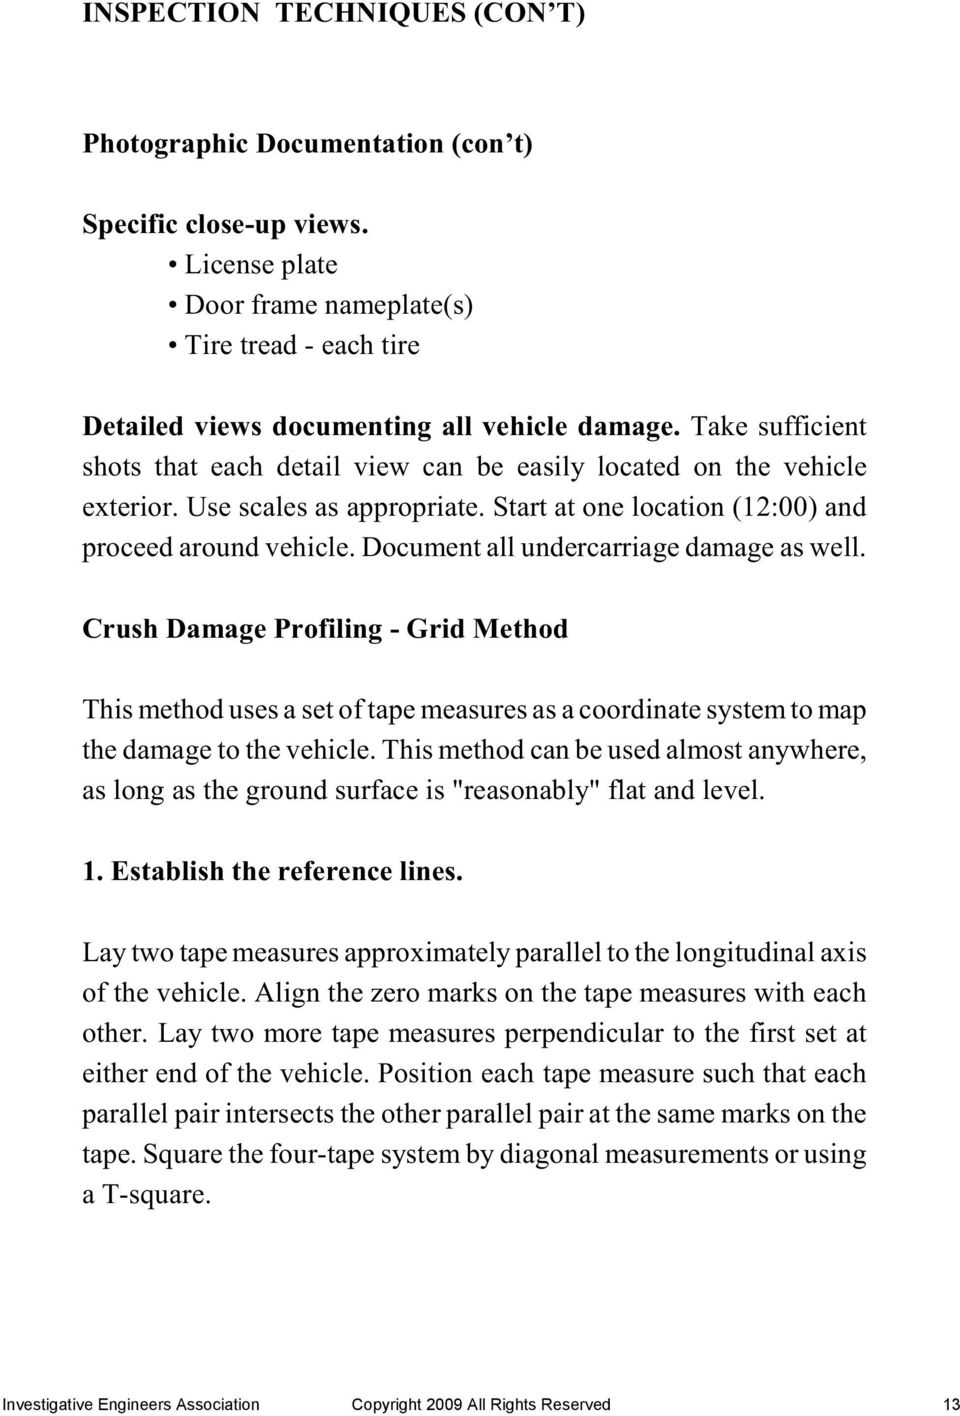 Document all undercarriage damage as well. Crush Damage Profiling - Grid Method This method uses a set of tape measures as a coordinate system to map the damage to the vehicle.